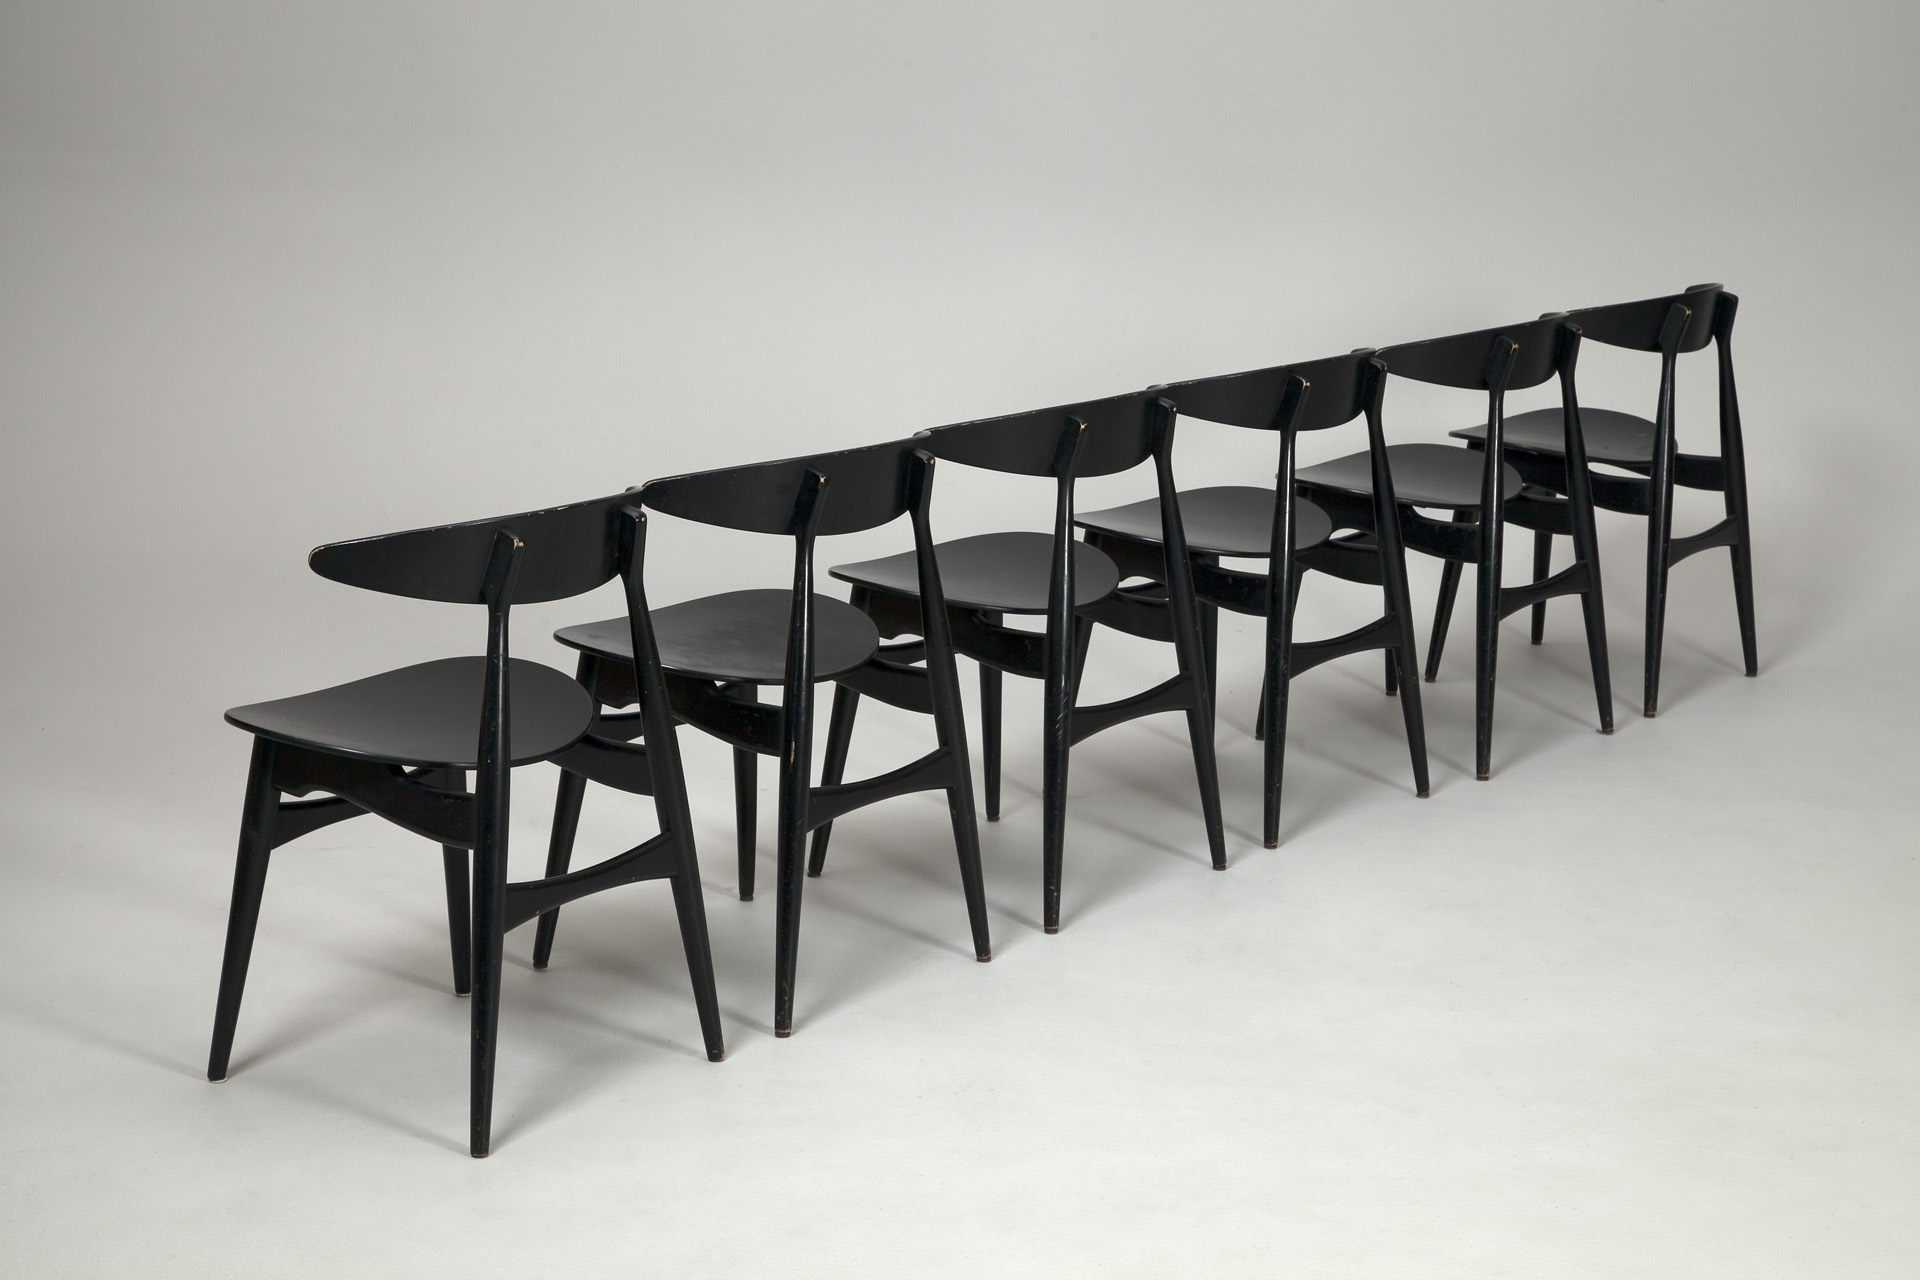 jacksons ch 33 chairs hans j wegner. Black Bedroom Furniture Sets. Home Design Ideas